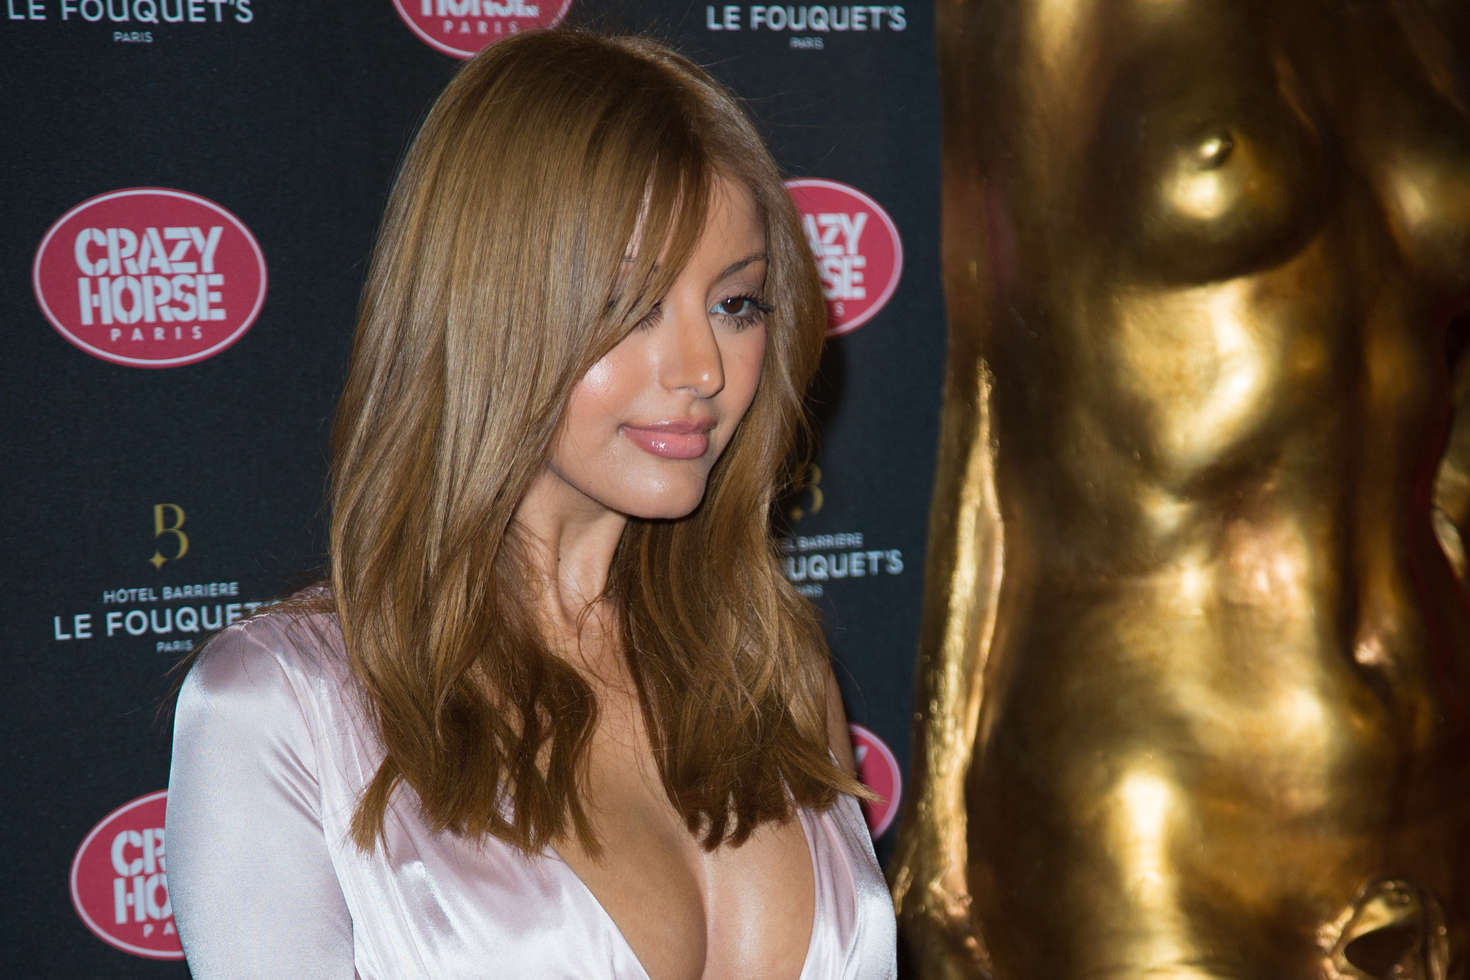 zahia-dehar-areola-slip-pussy-slip-at-crazy-horse-in-paris-25